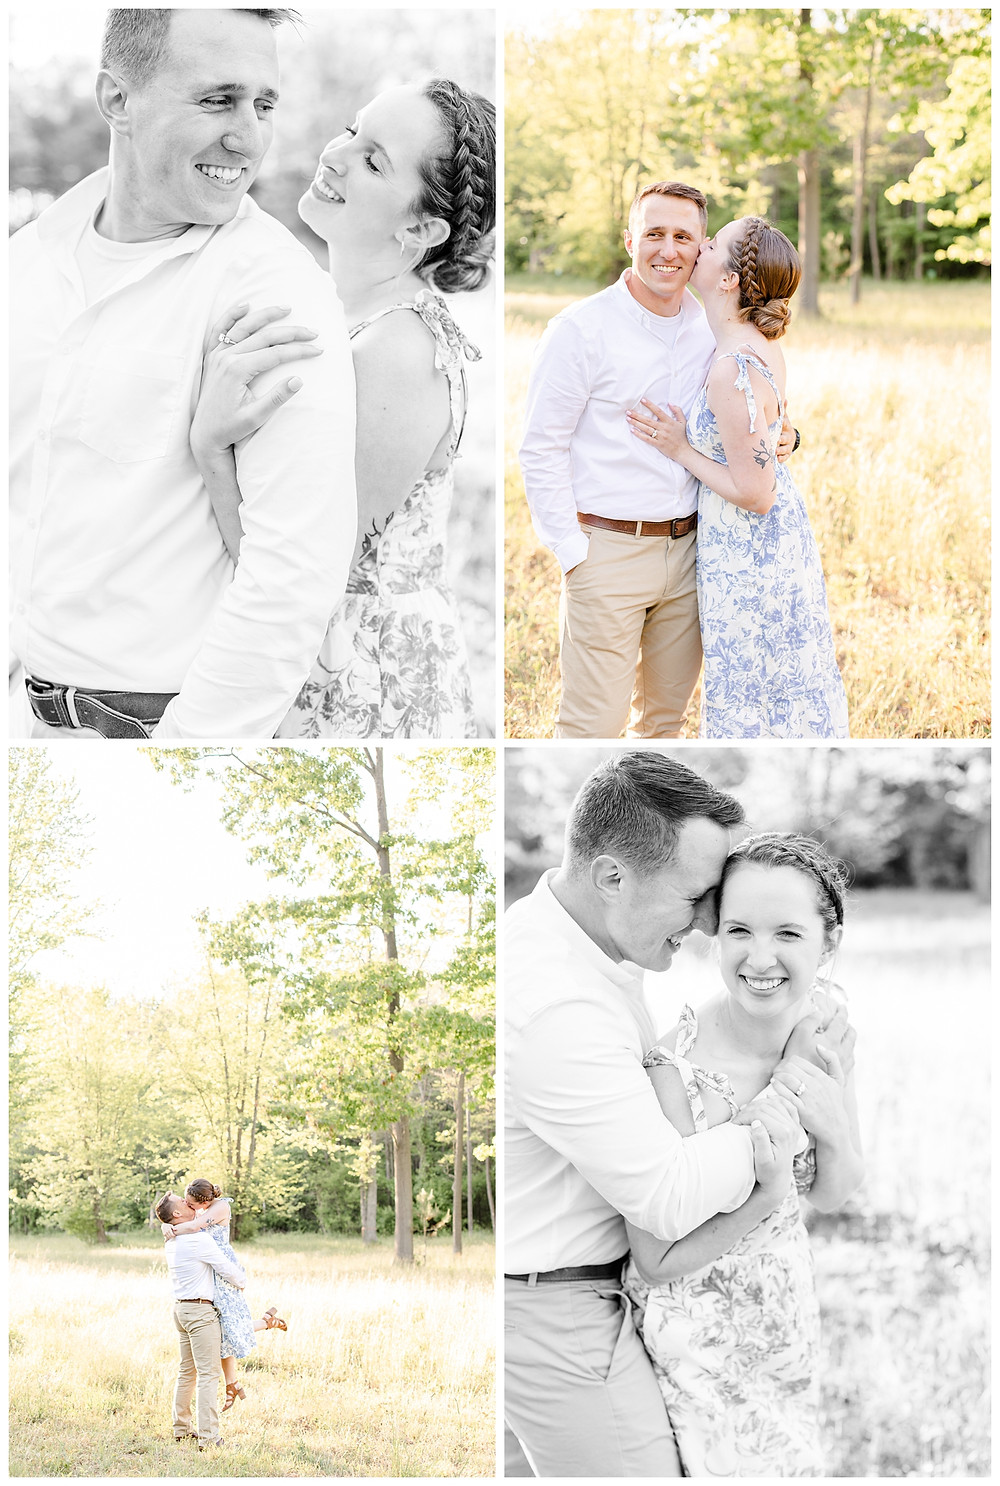 Josh and Andrea wedding photography husband and wife photographer team michigan pictures south haven engagement pictures session fields and woods photo shoot fiance kissing lift laughing